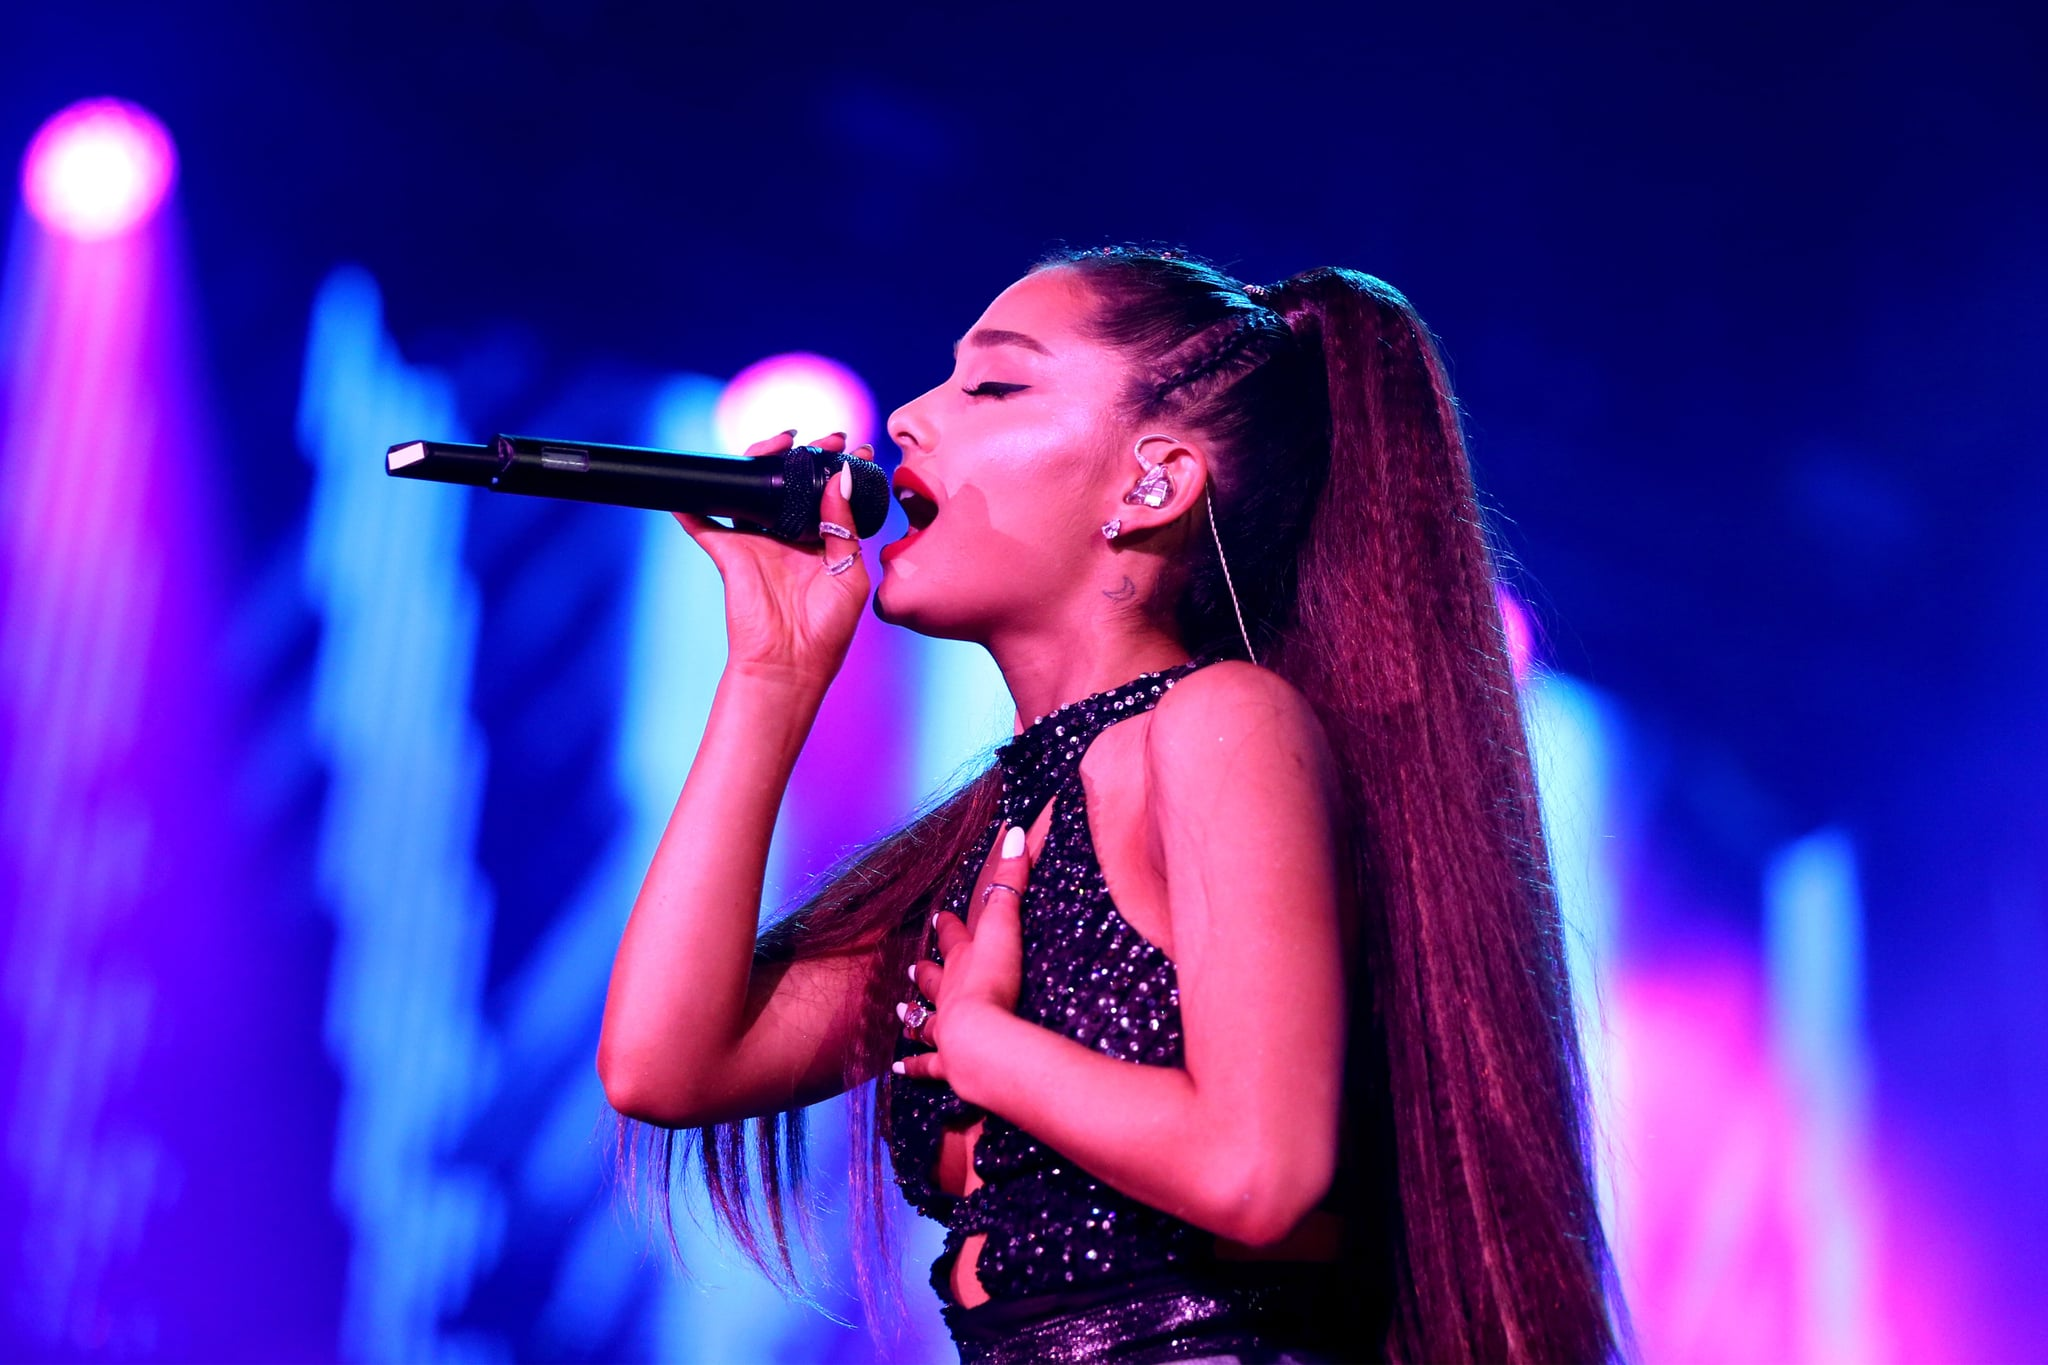 Ariana Grande Quotes About Her Next Album in Billboard 2018